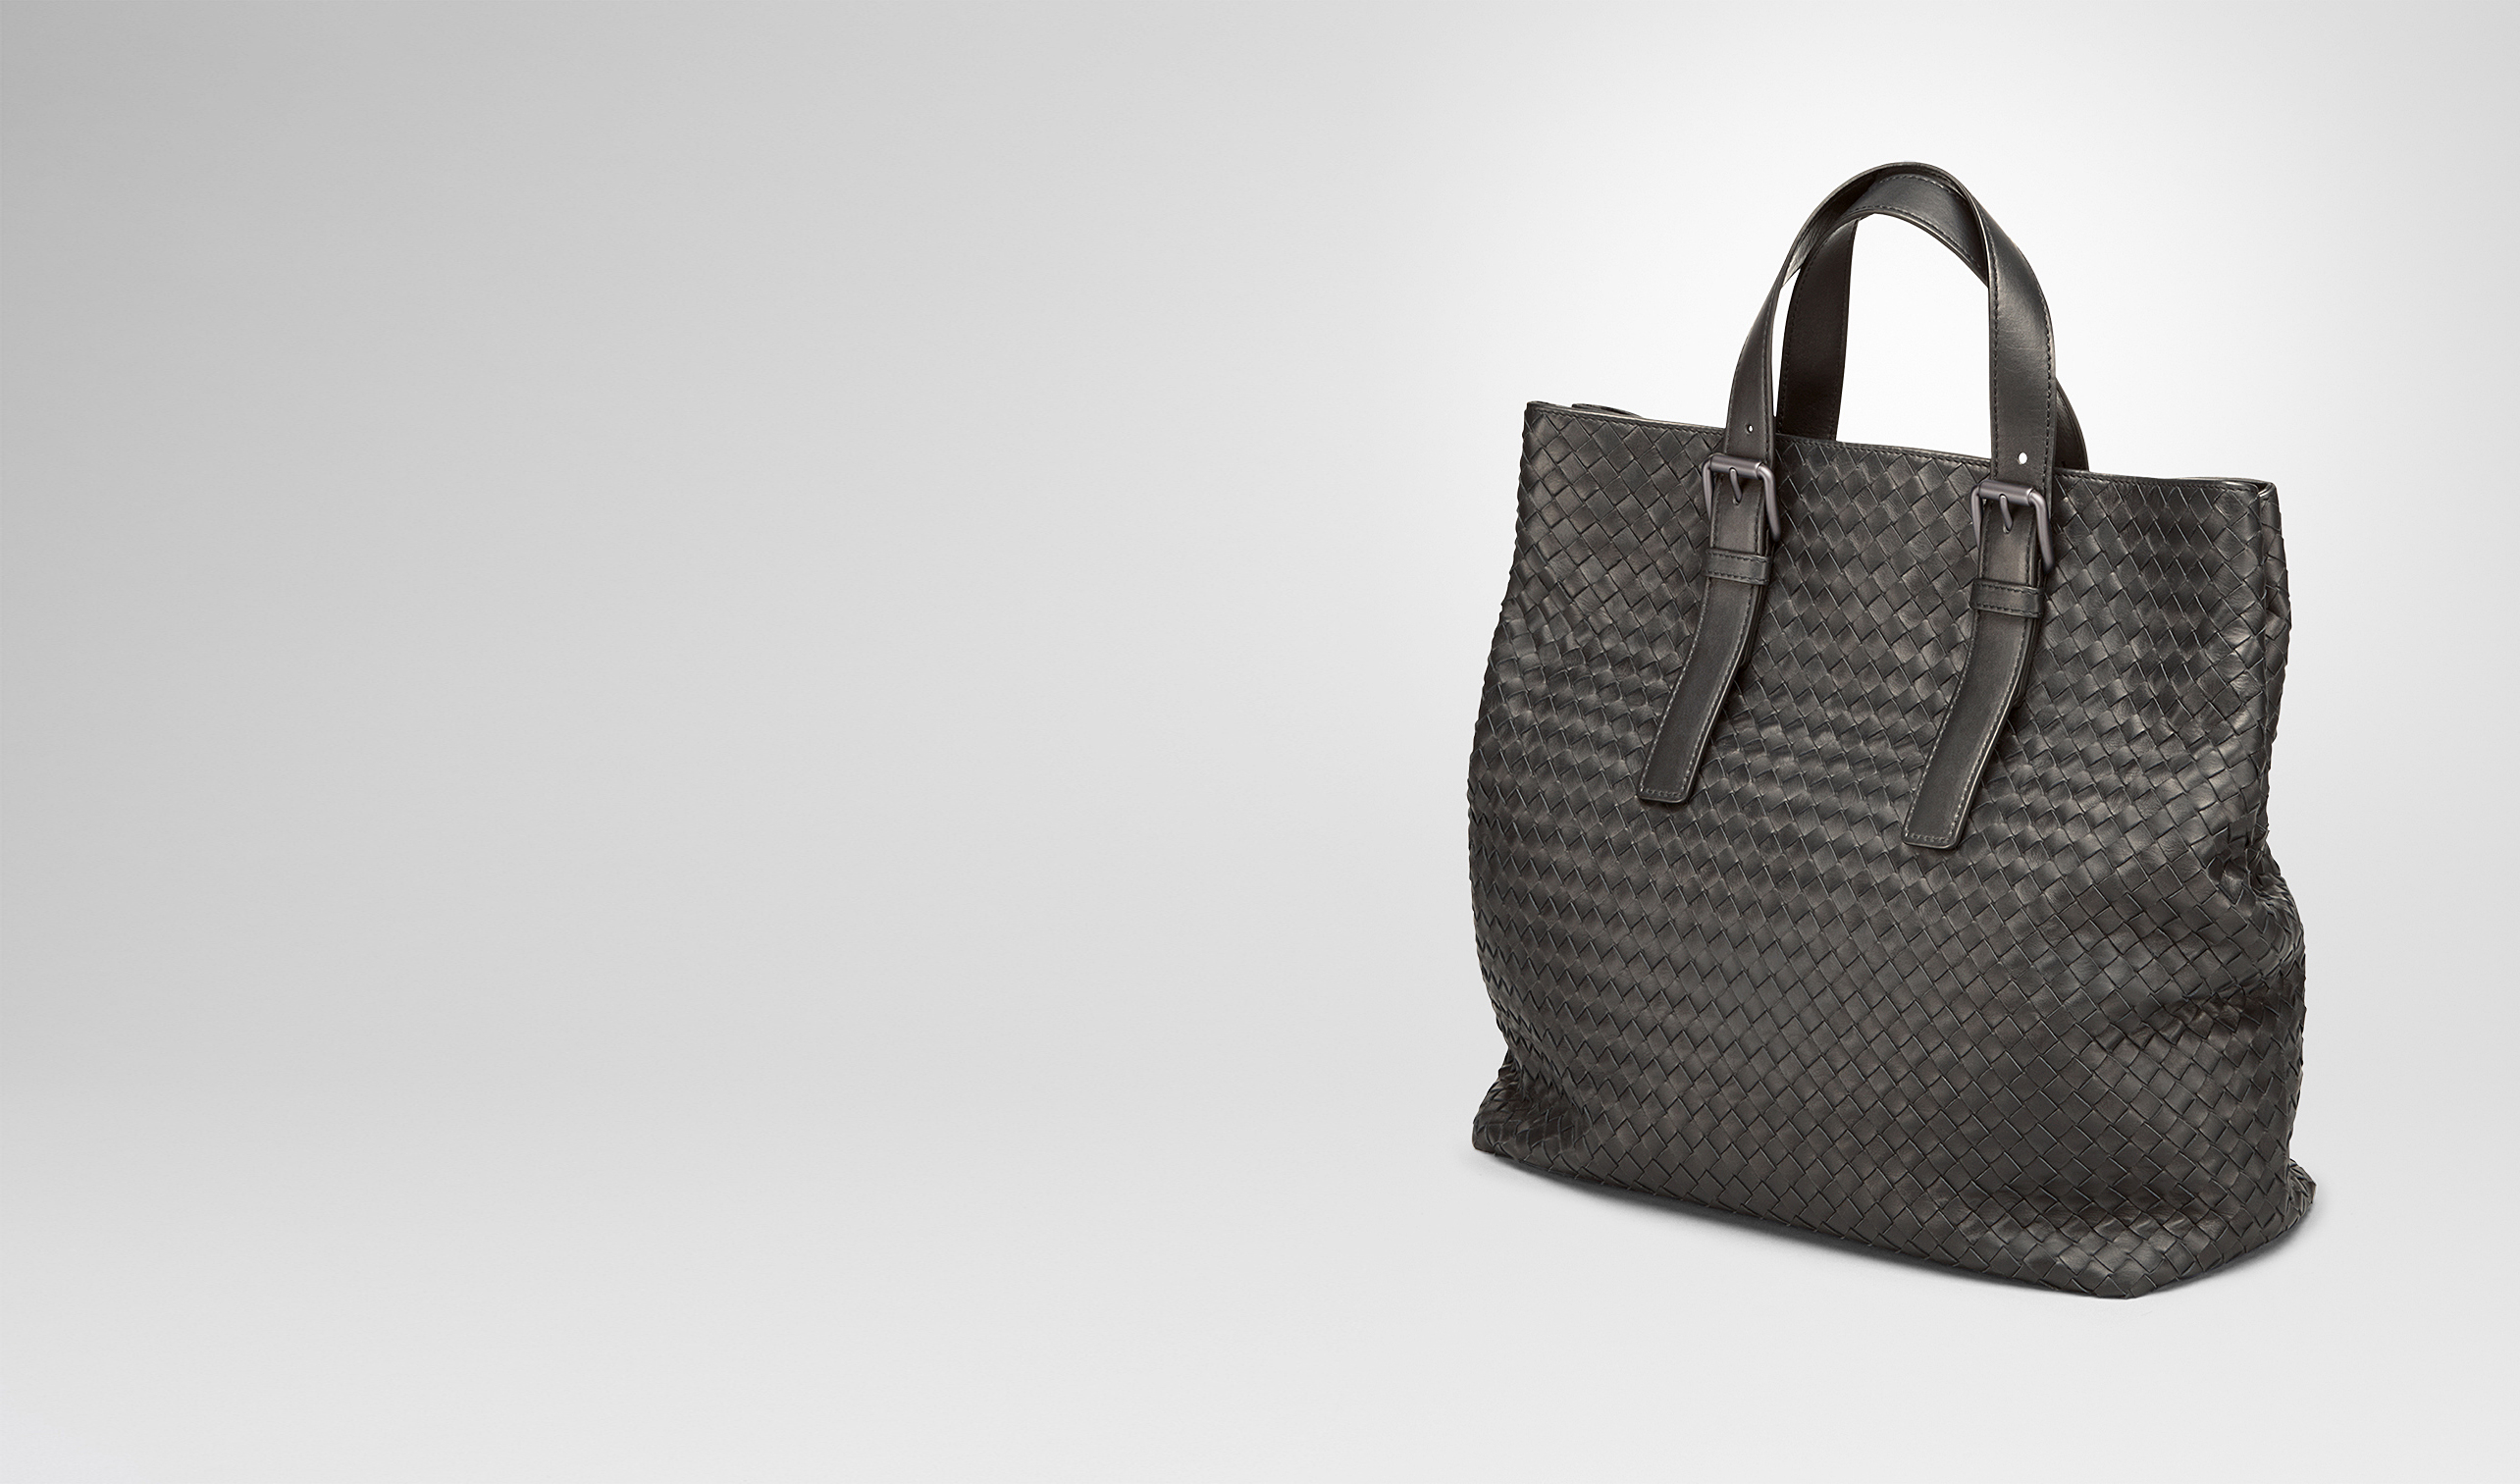 BOTTEGA VENETA Shopper U TOTE BAG AUS INTRECCIATO KALBSLEDER IN MORO pl